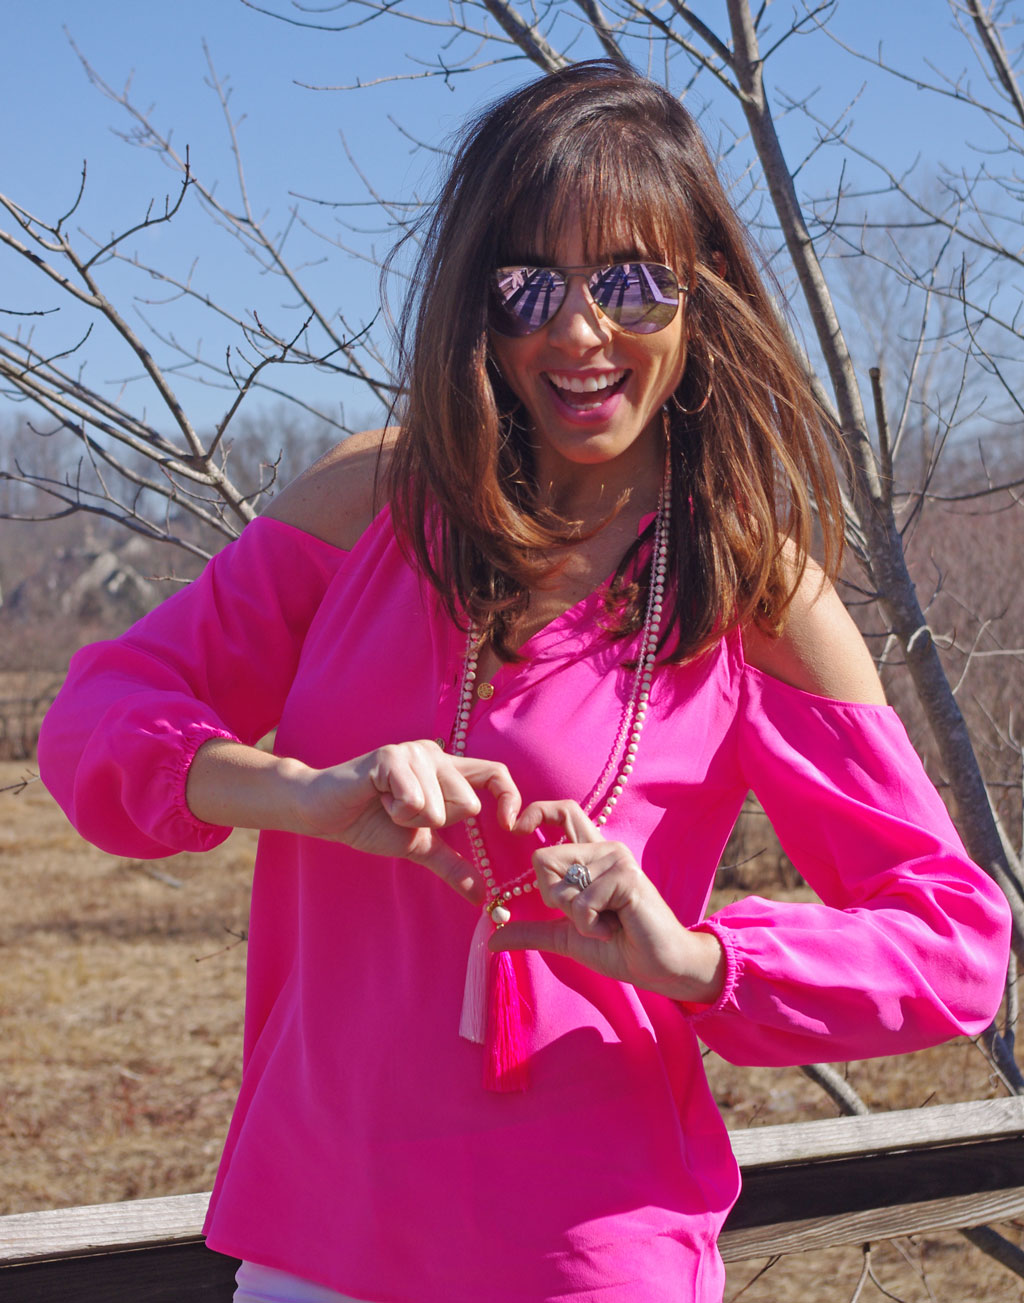 sunny-shoulder-long-sleeve-lilly-pulitzer-pink